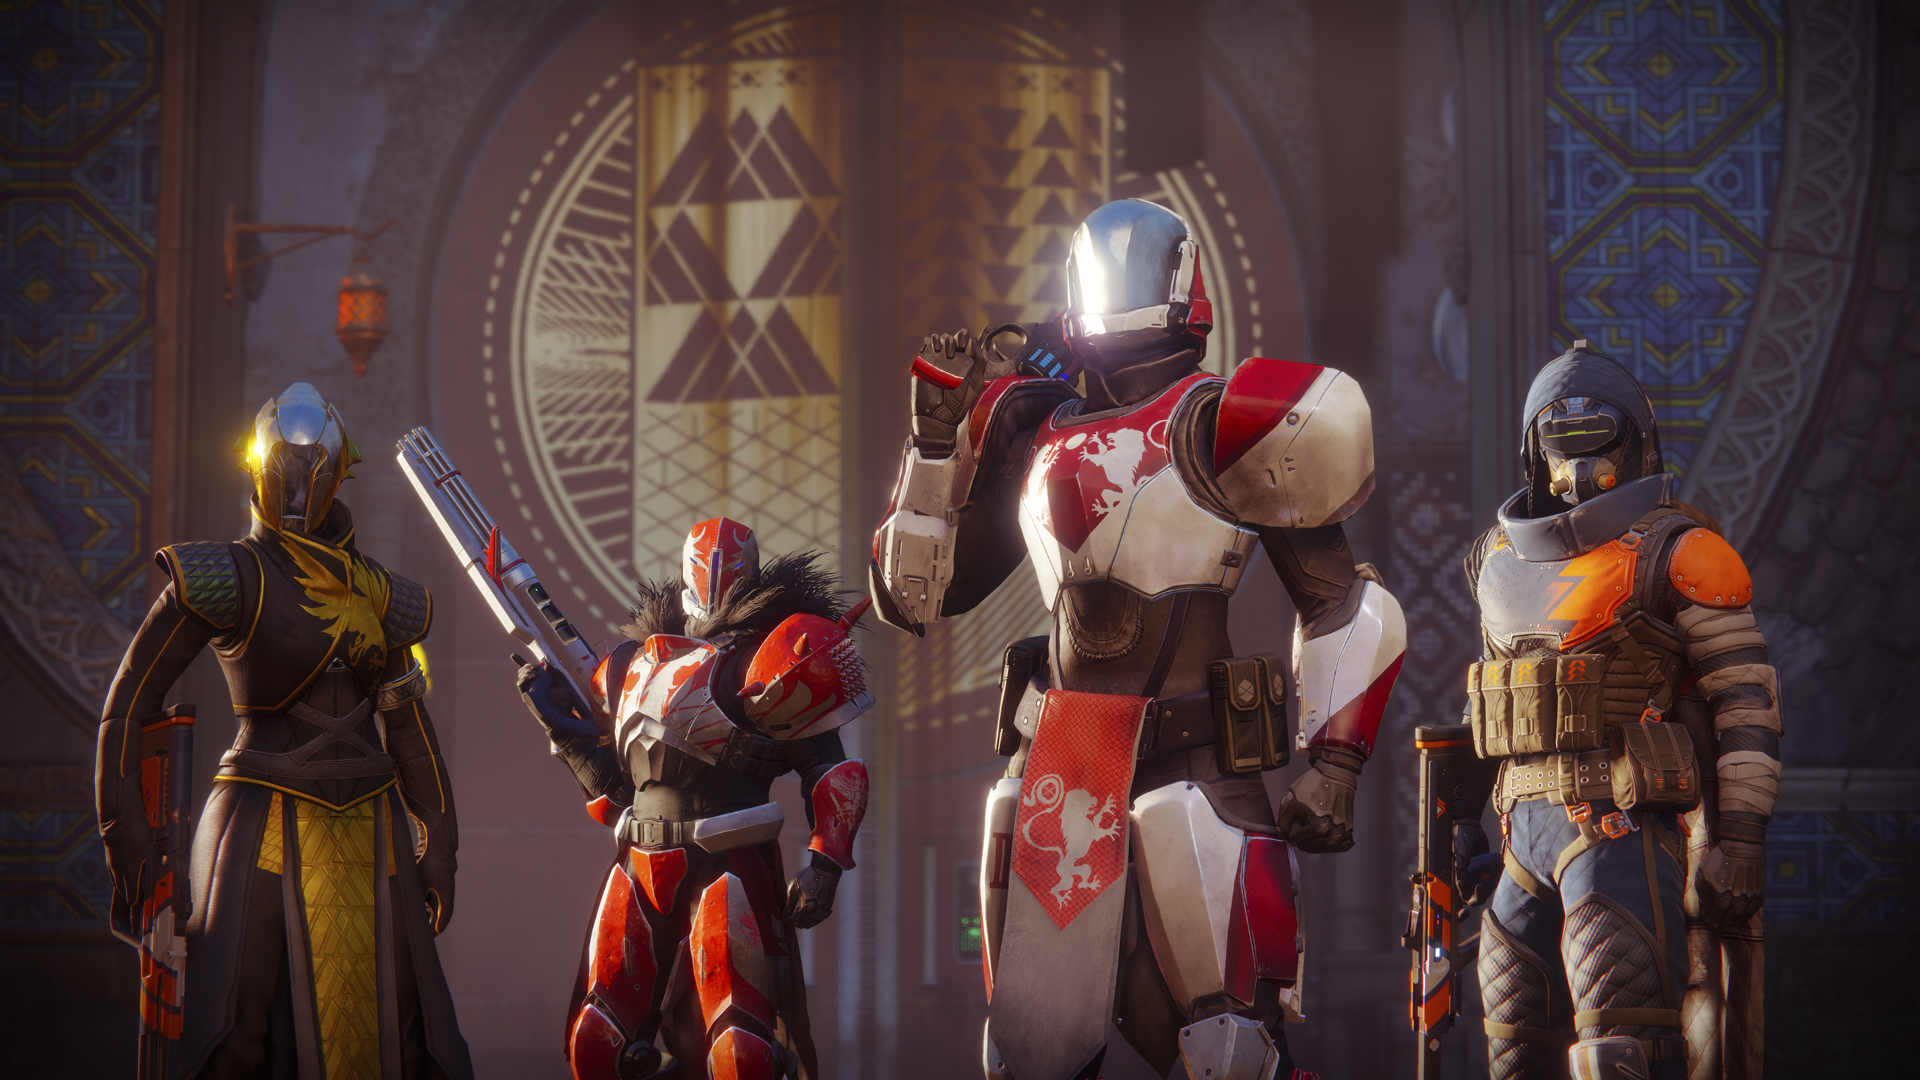 Bungie reveals Destiny 2's first expansion in new trailer, arrives